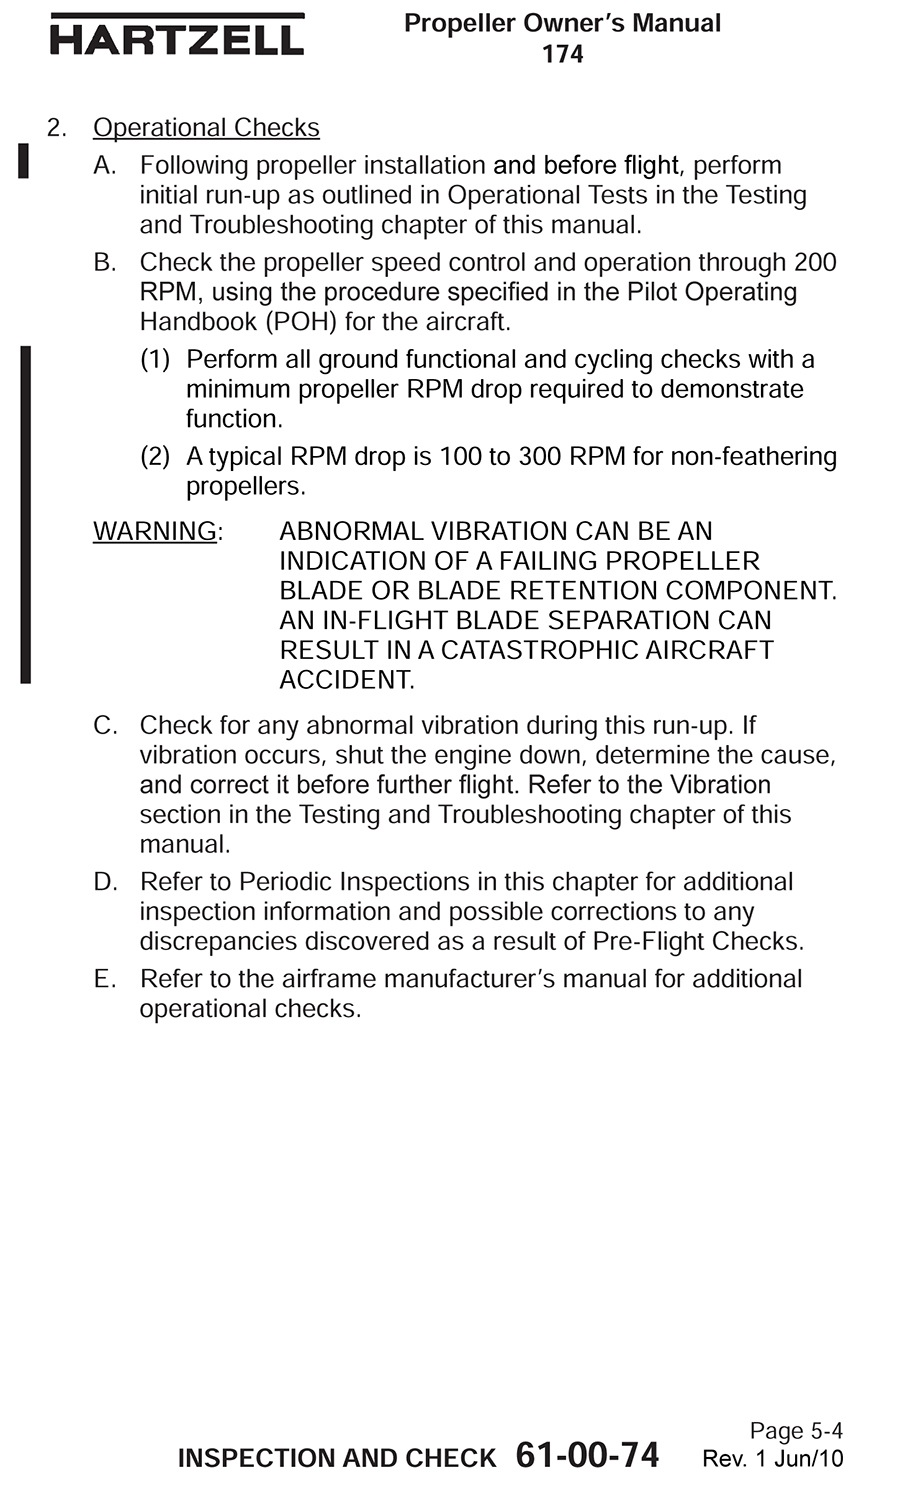 Hartzell Prop Manual 2010 page108